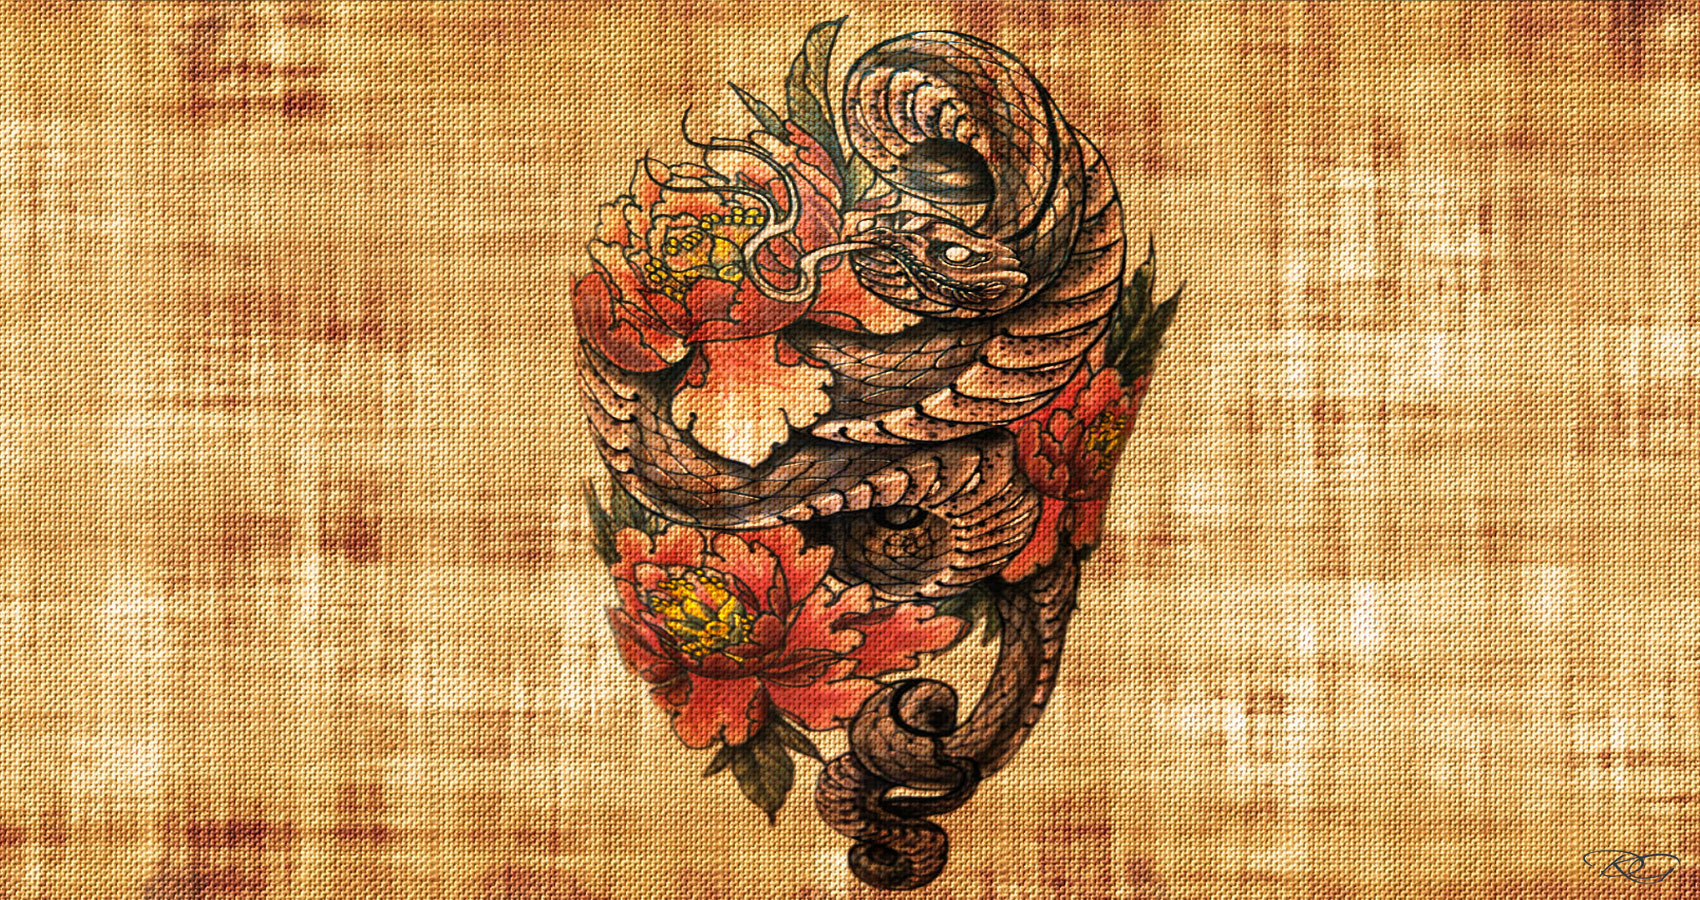 Dragons and Peonies by Christine E. Ray at Spillwords.com